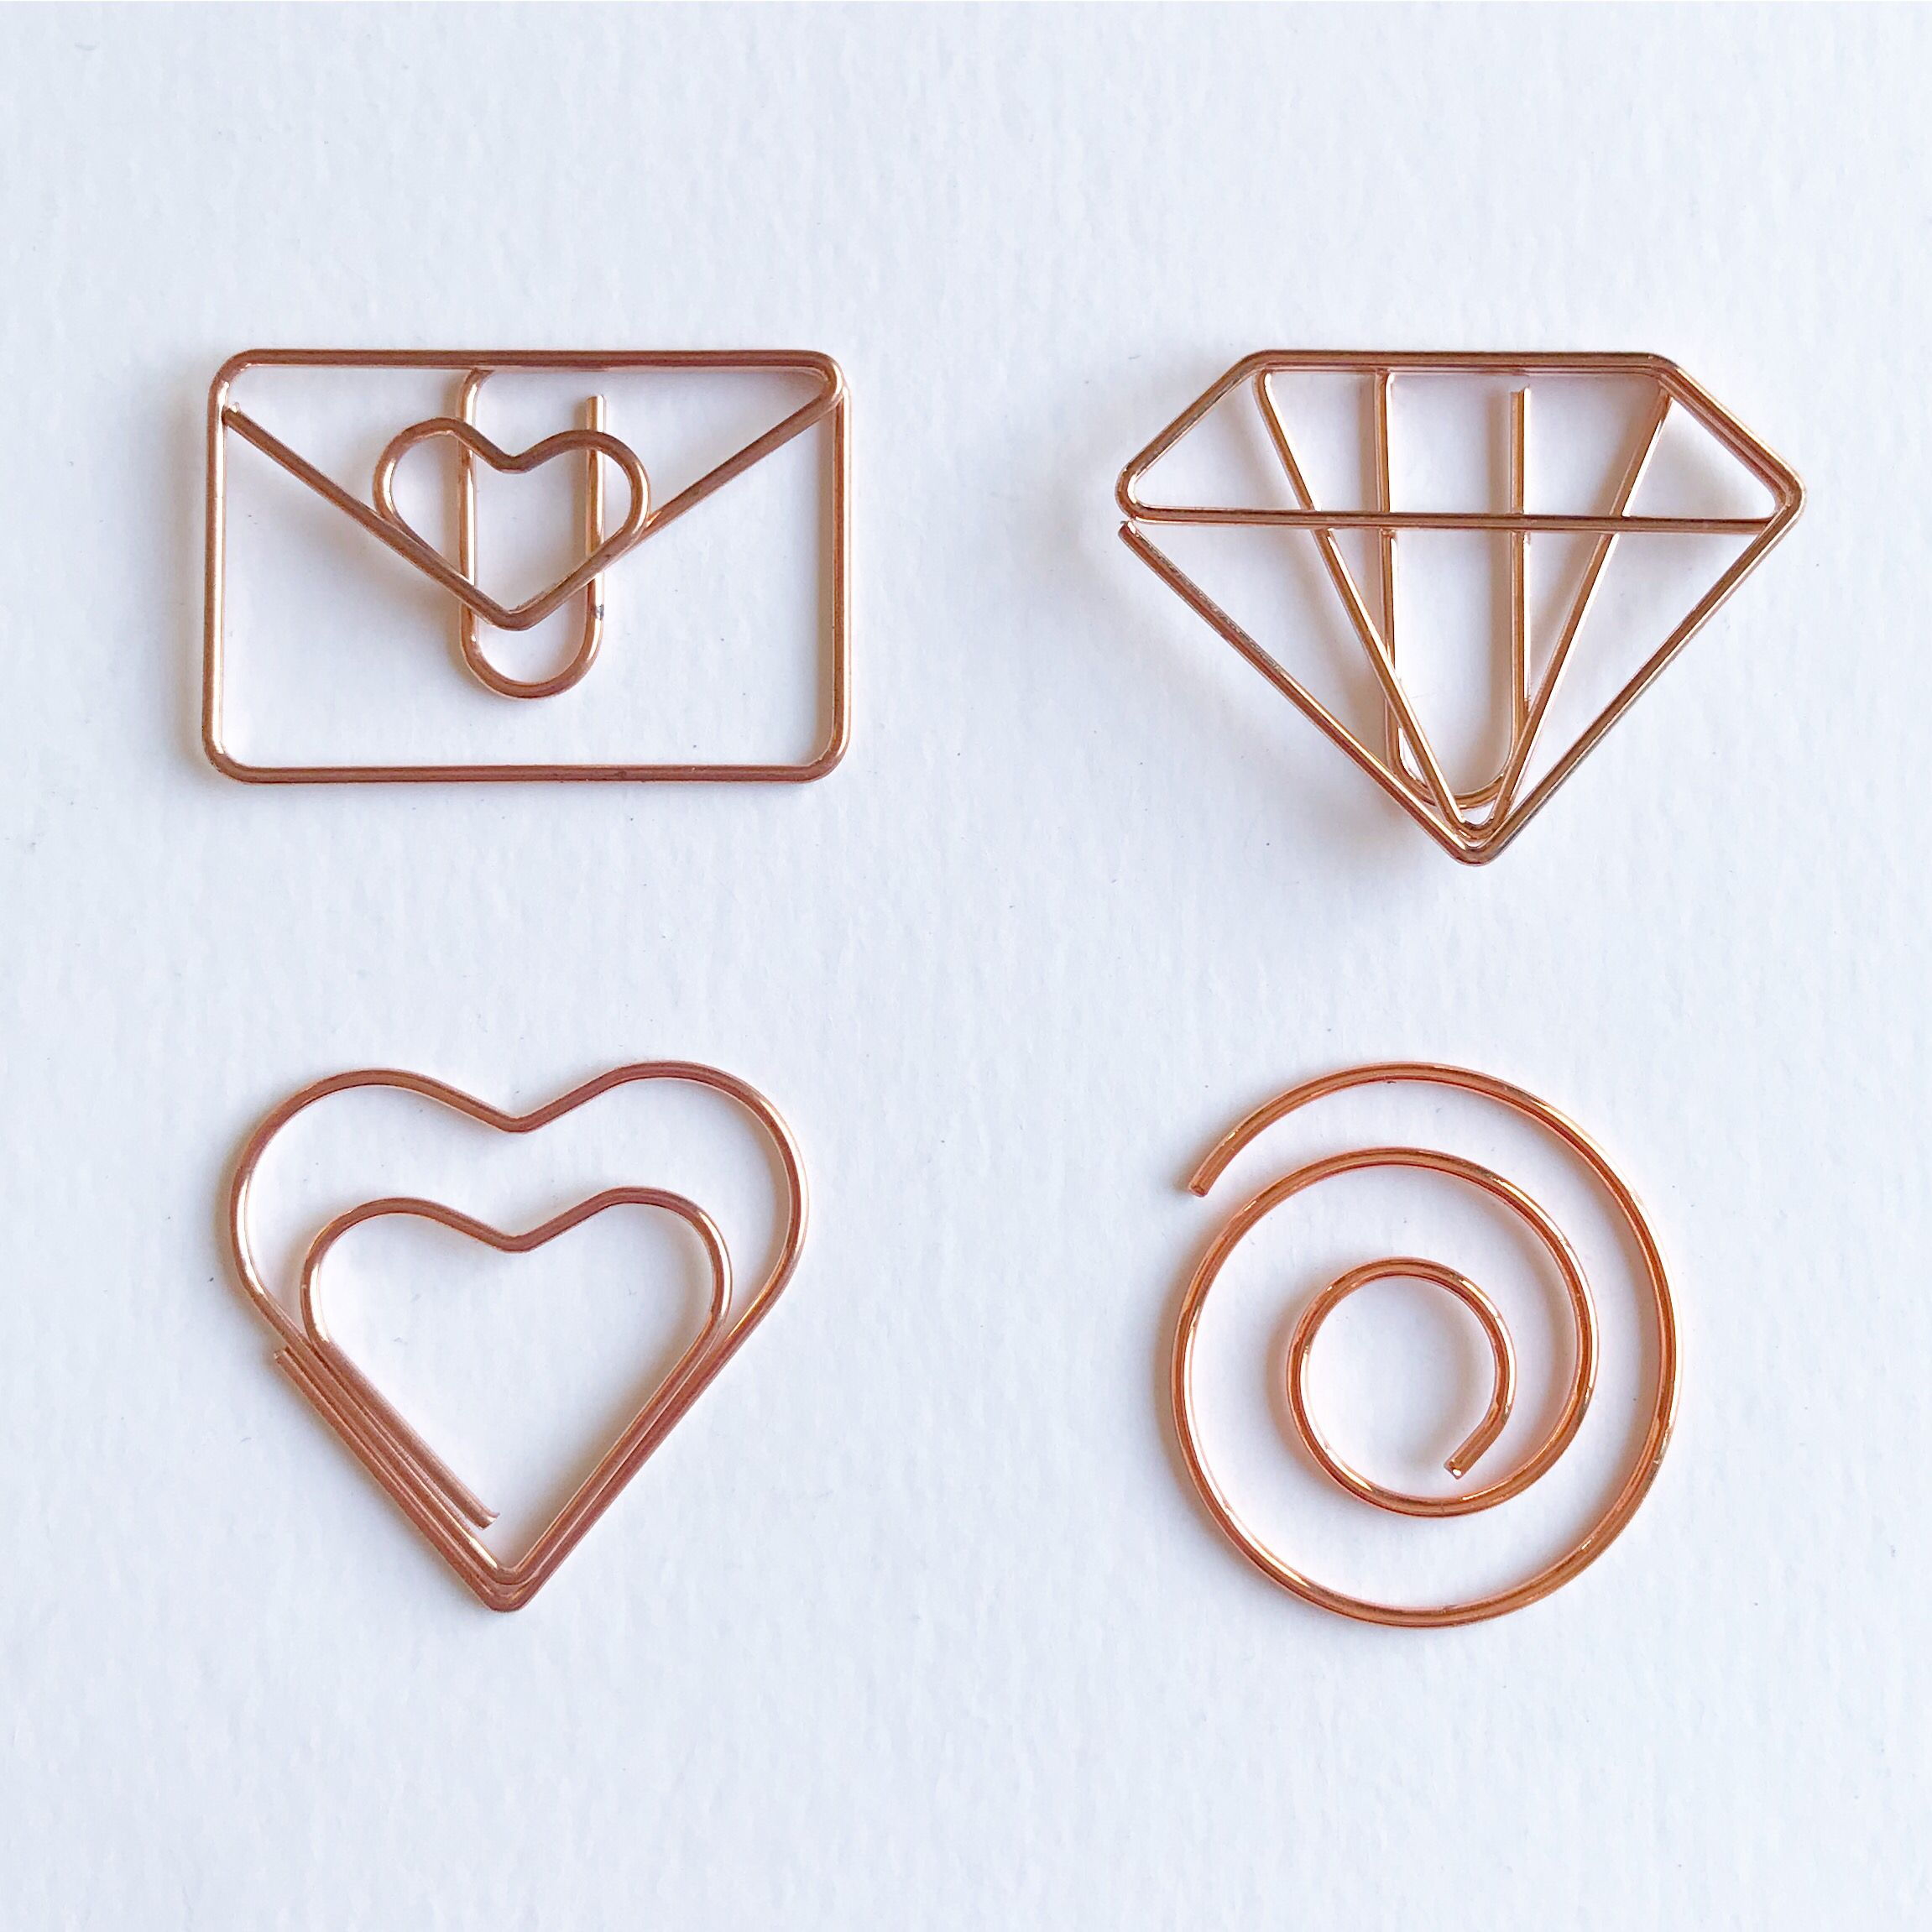 Glamorous Rose Gold Paperclips For Work And Home. Decorate